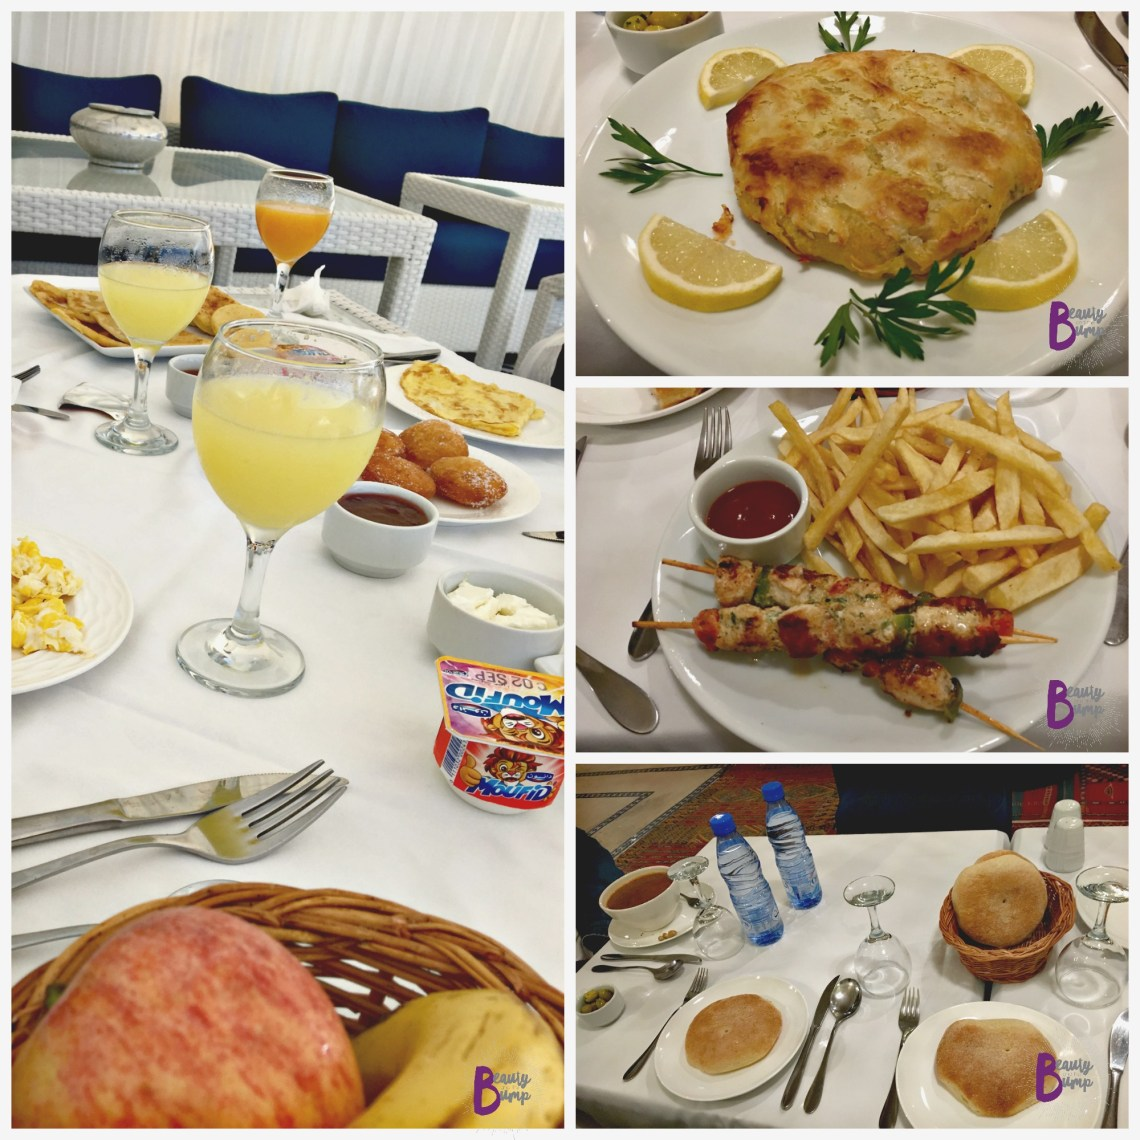 Lina Ryad and Spa Food breakfast and dinner